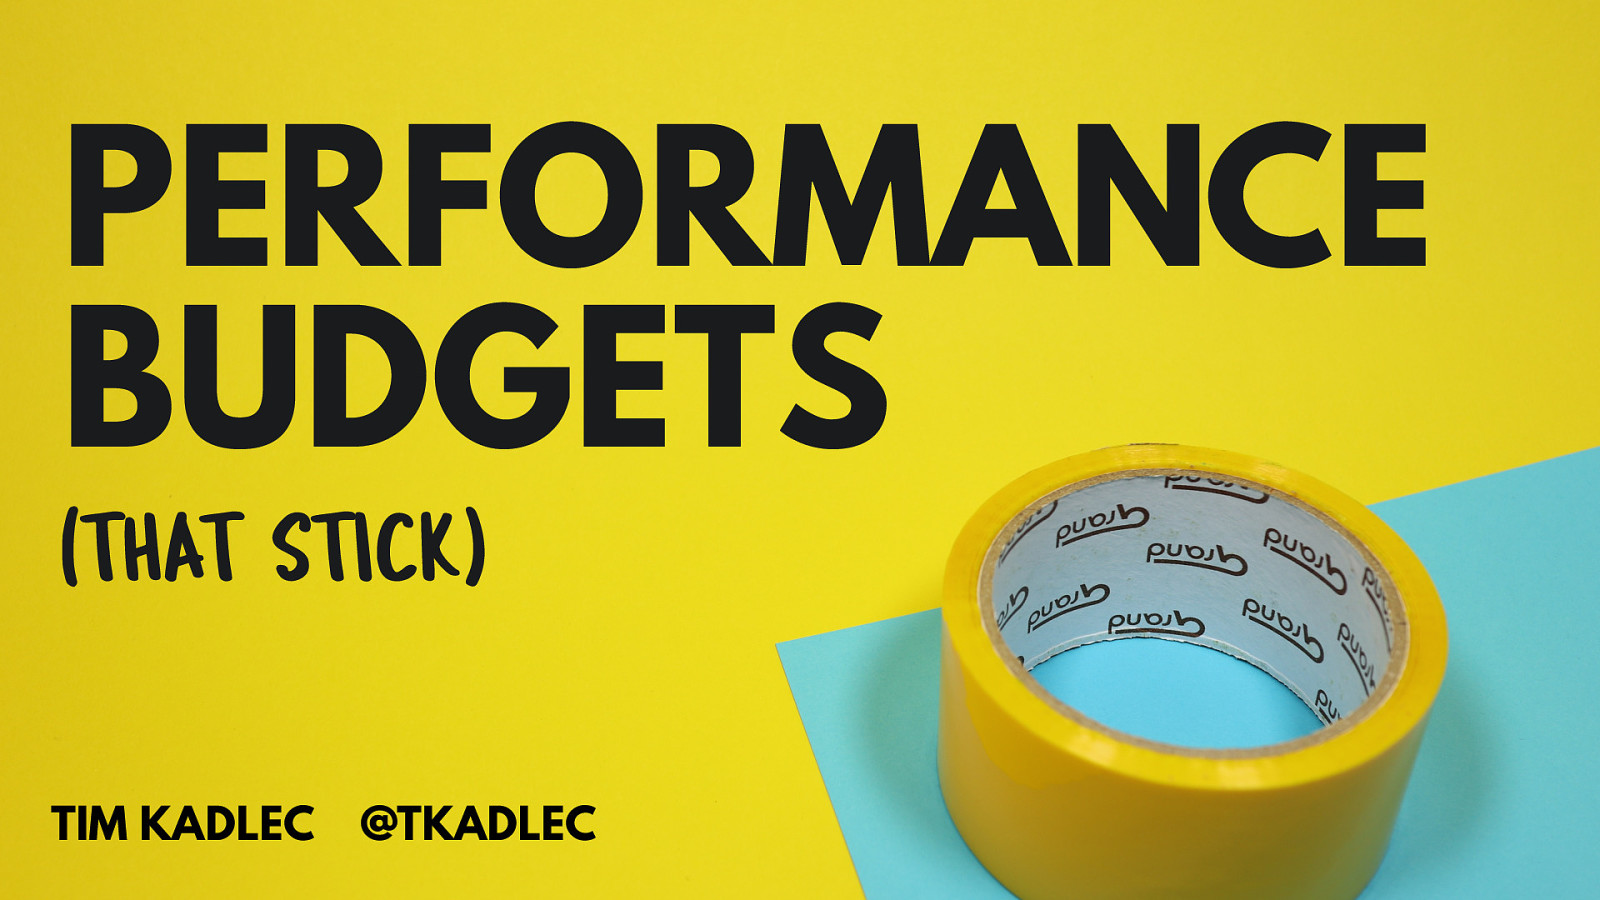 Performance Budgets that Stick